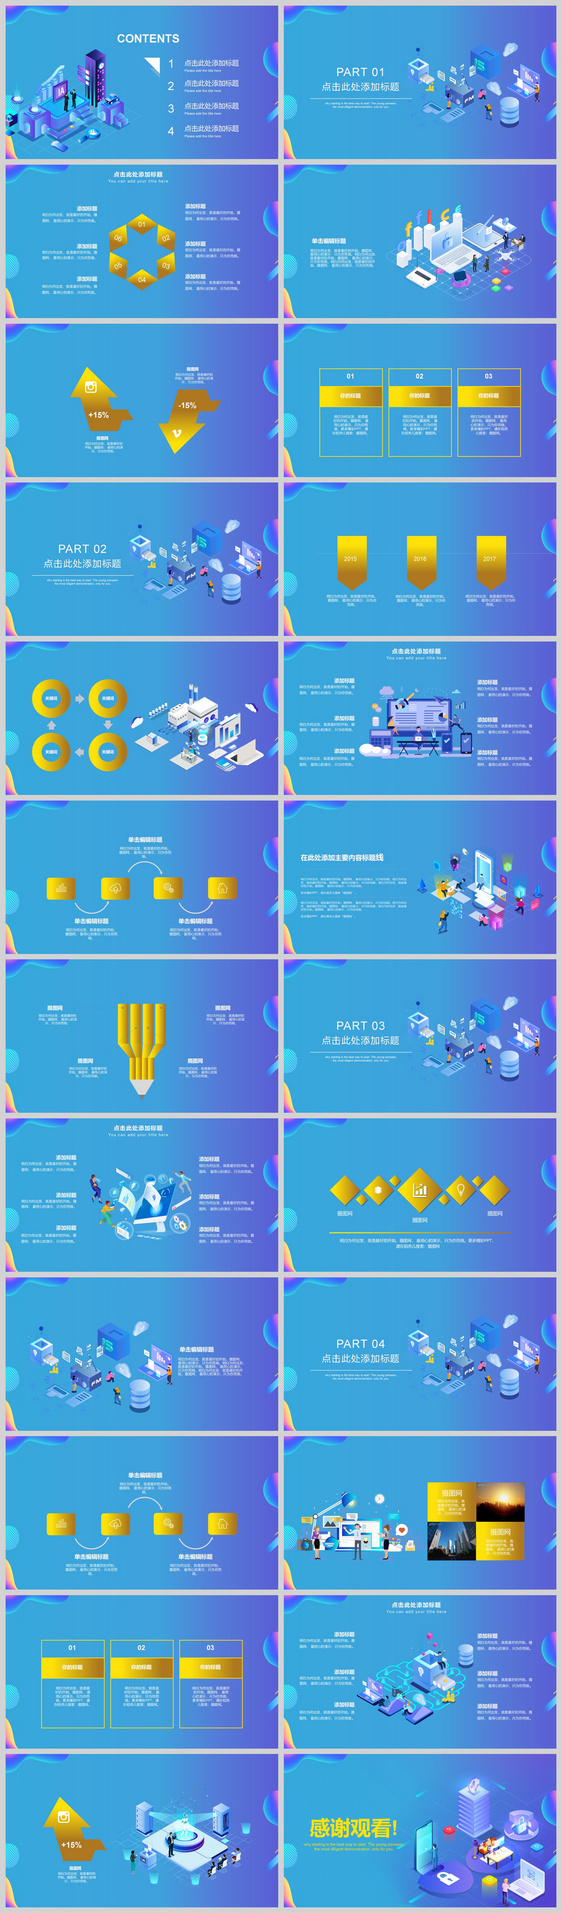 Blue technology network information security PPT template powerpoint